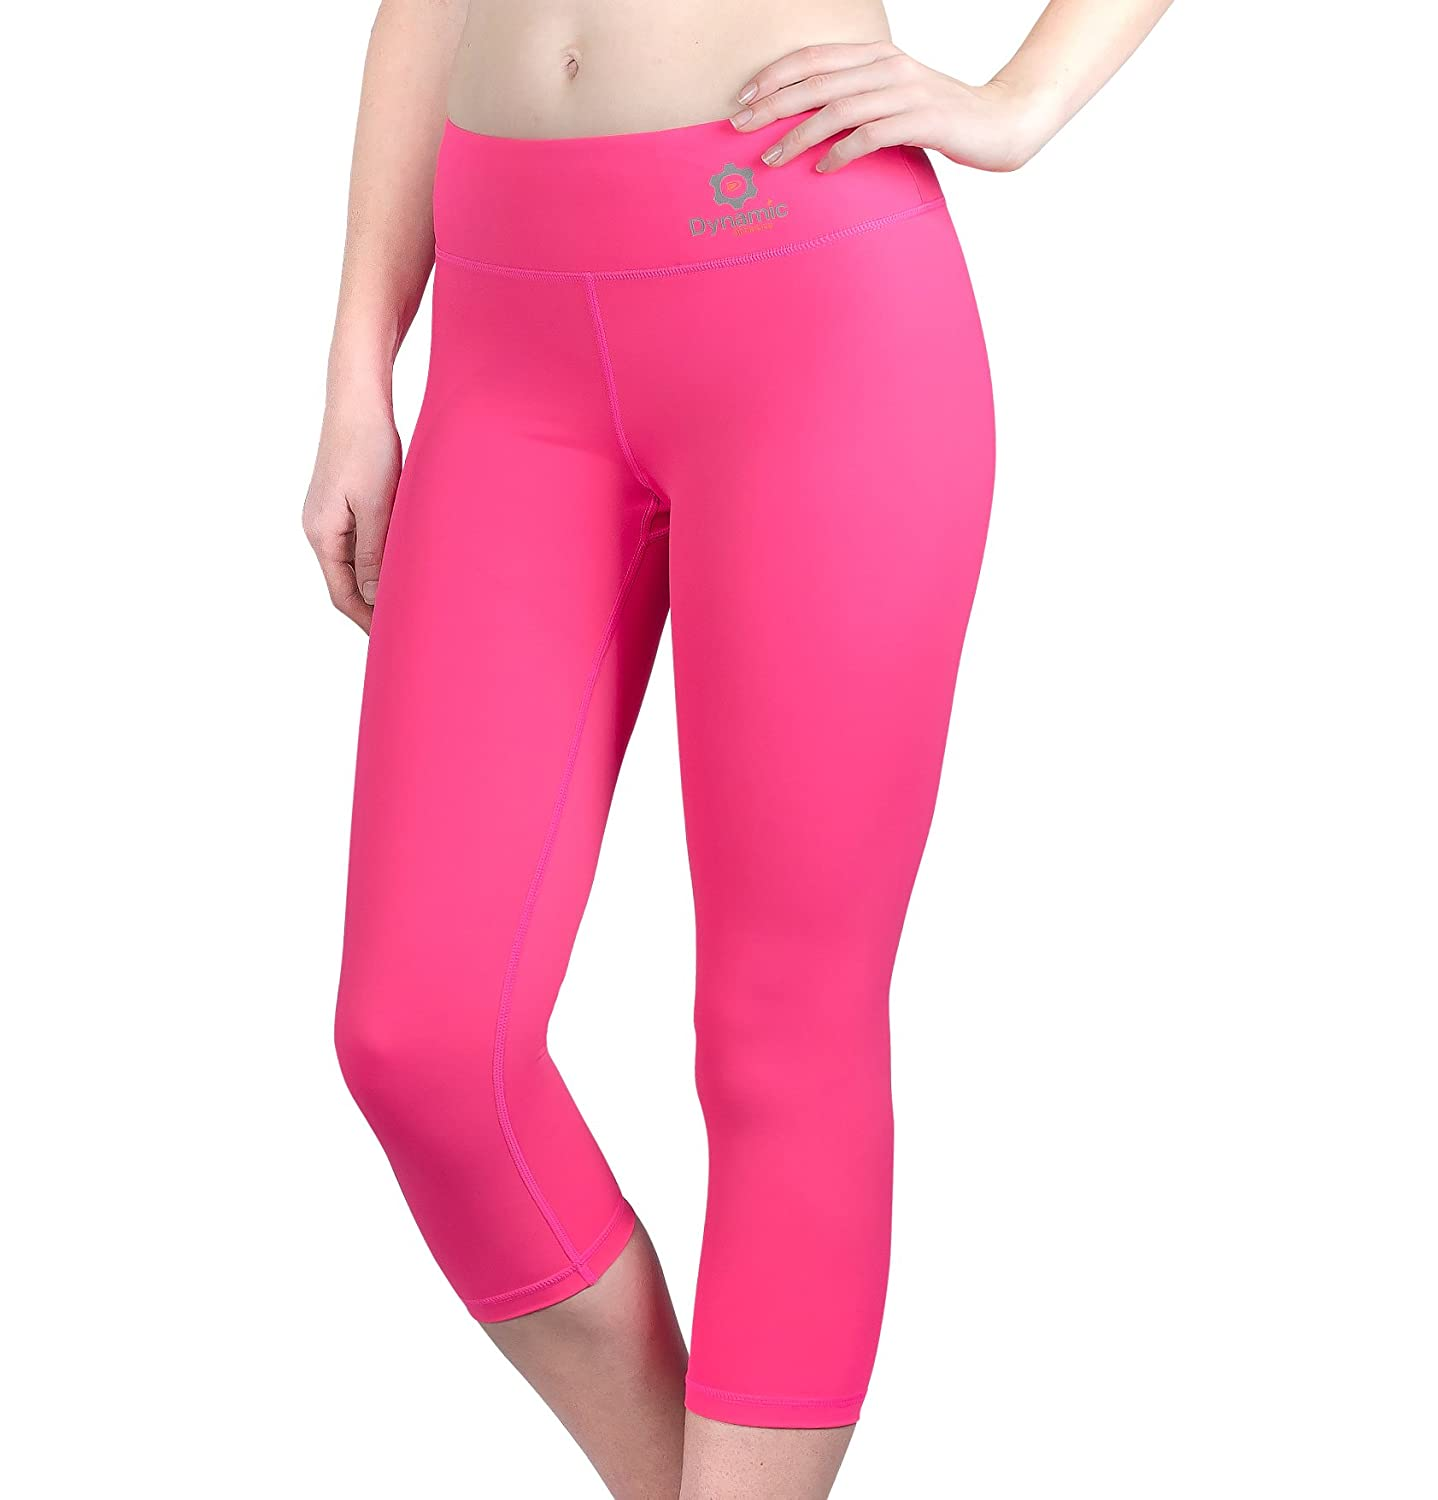 5df89c81021f0 Amazon.com: Dynamic Athletica Compression Capri Leggings for Women/Slimming  Yoga Pants/Tights & Workout Clothes: Clothing